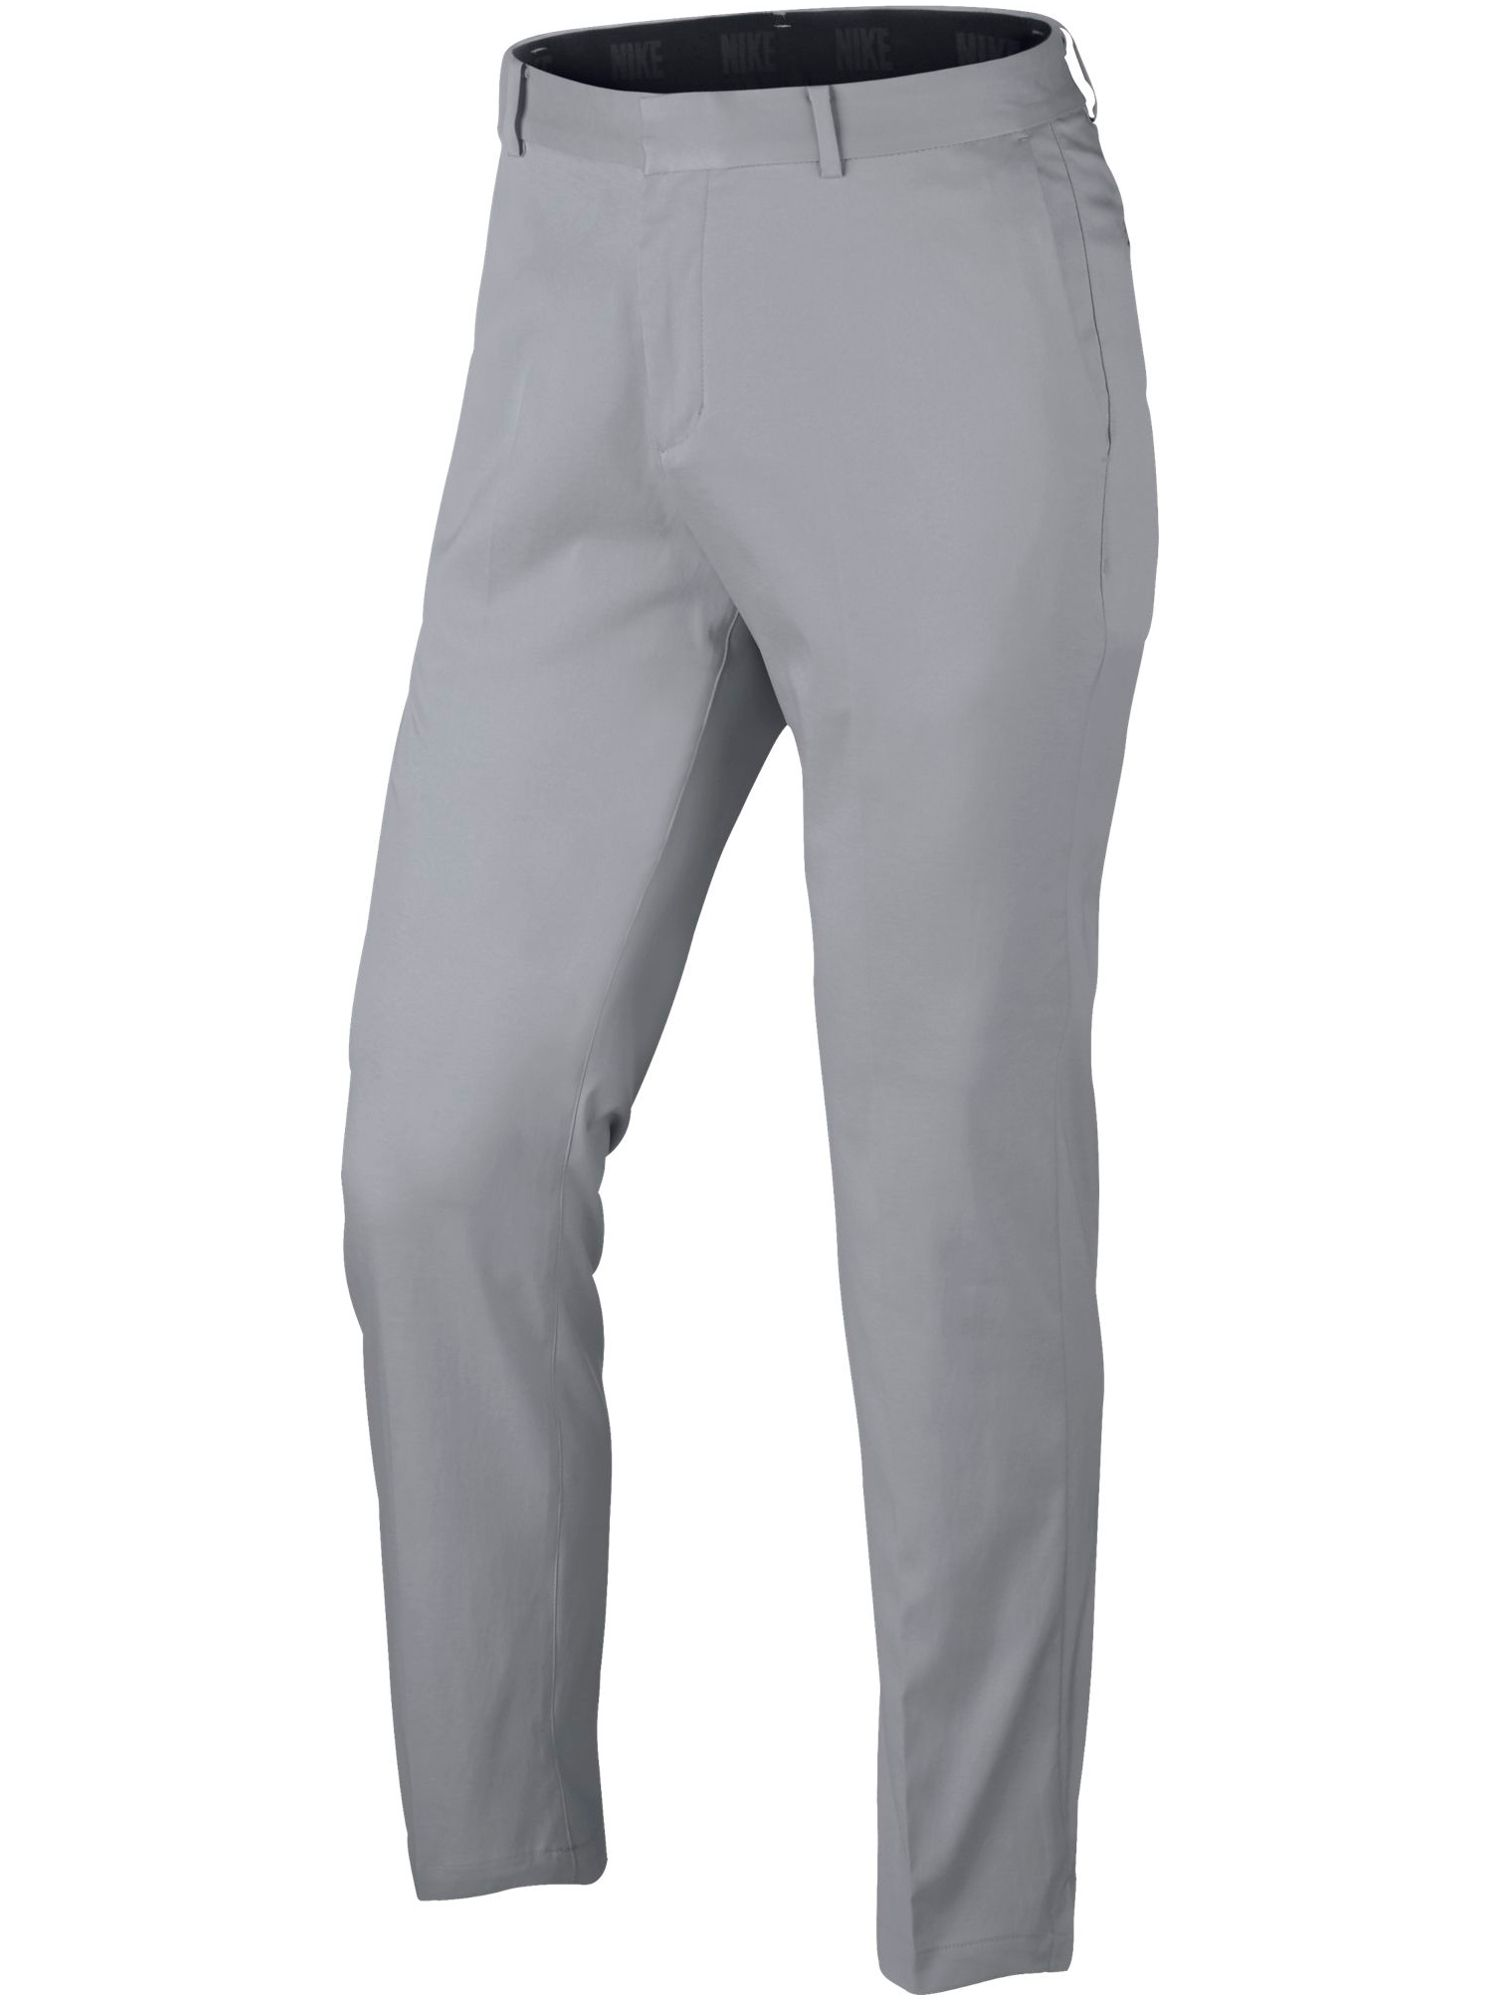 Mens Nike Flat Front Trousers Light Grey